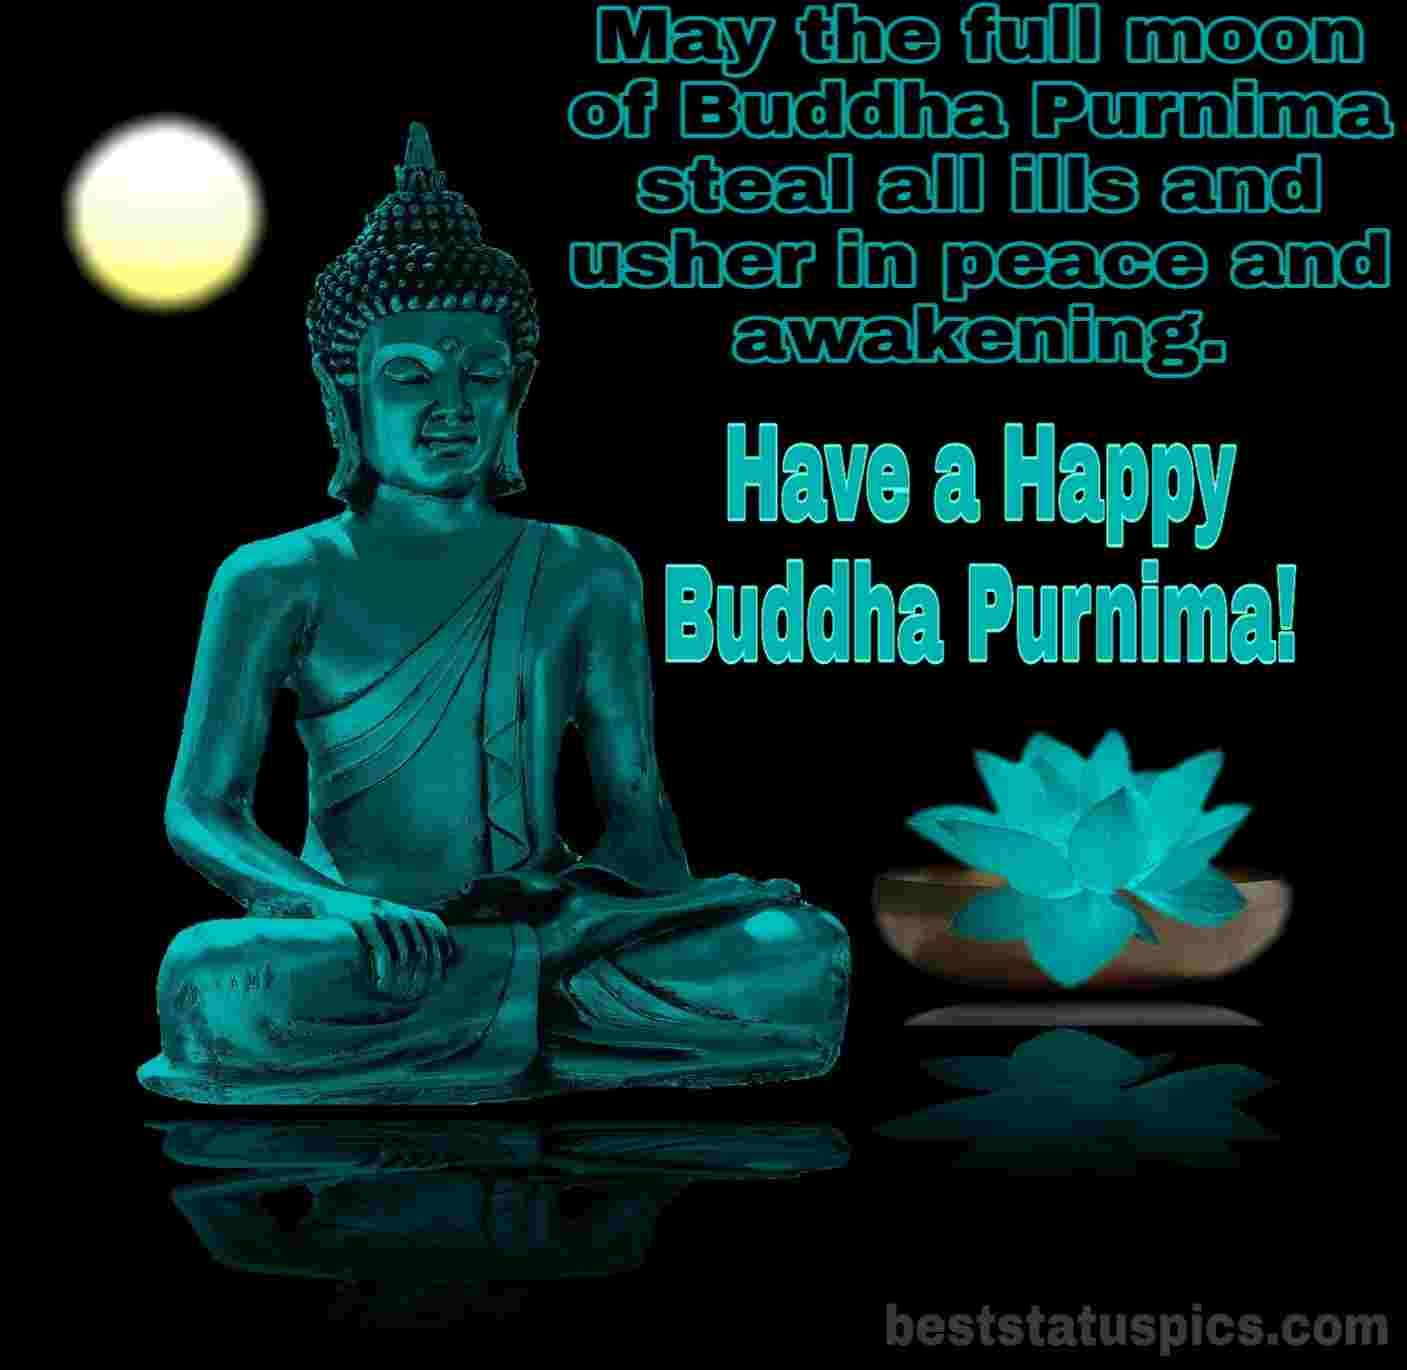 Pin on Happy Buddha Purnima 2020 Wishes, Quotes, Images